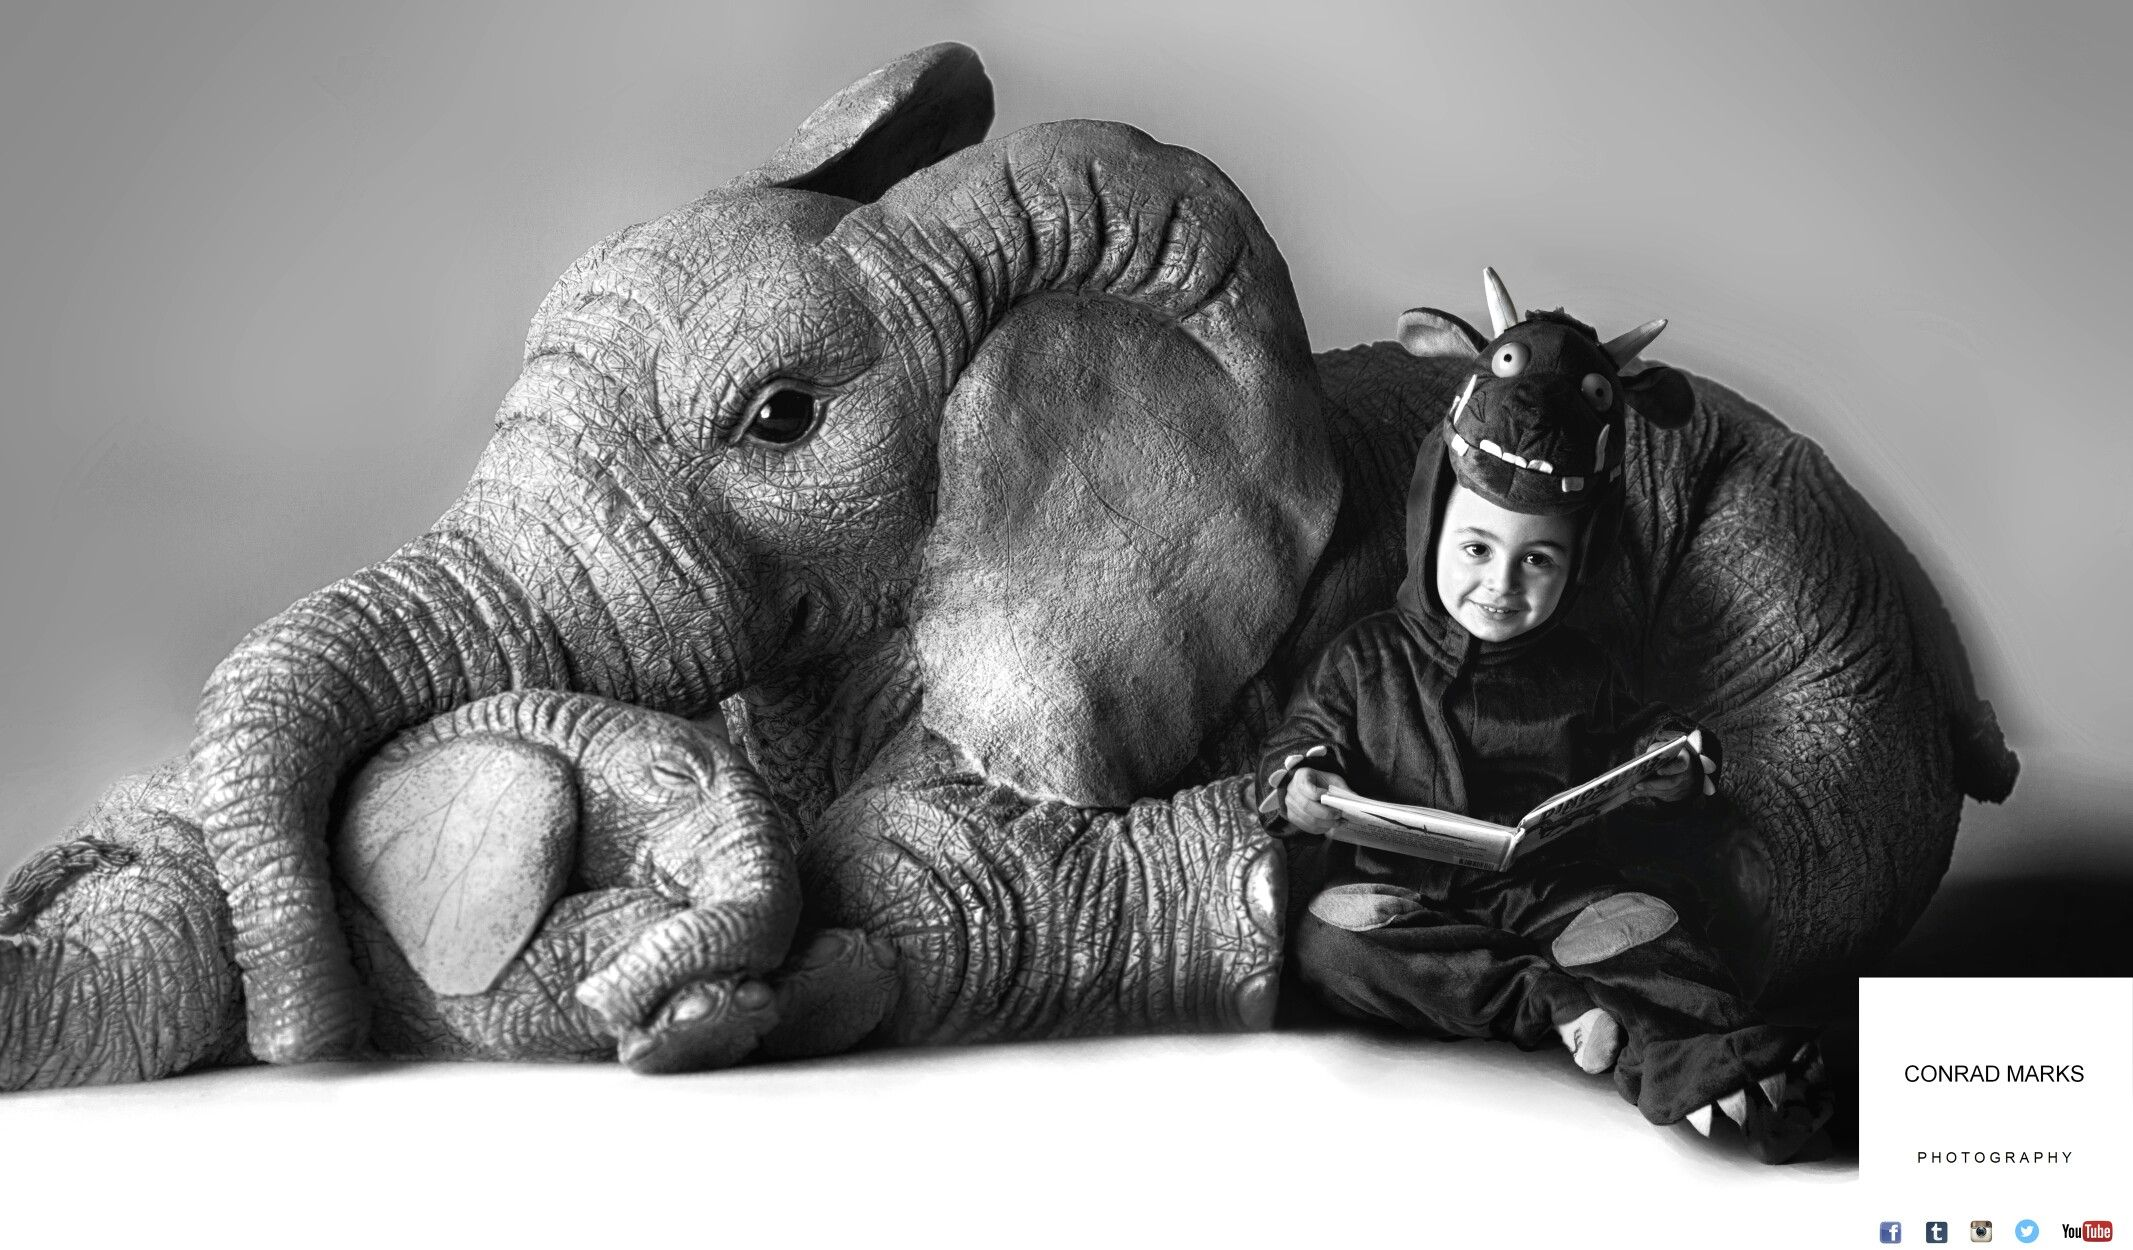 The Elephant is an orniment and would fit in the palm of your hand.